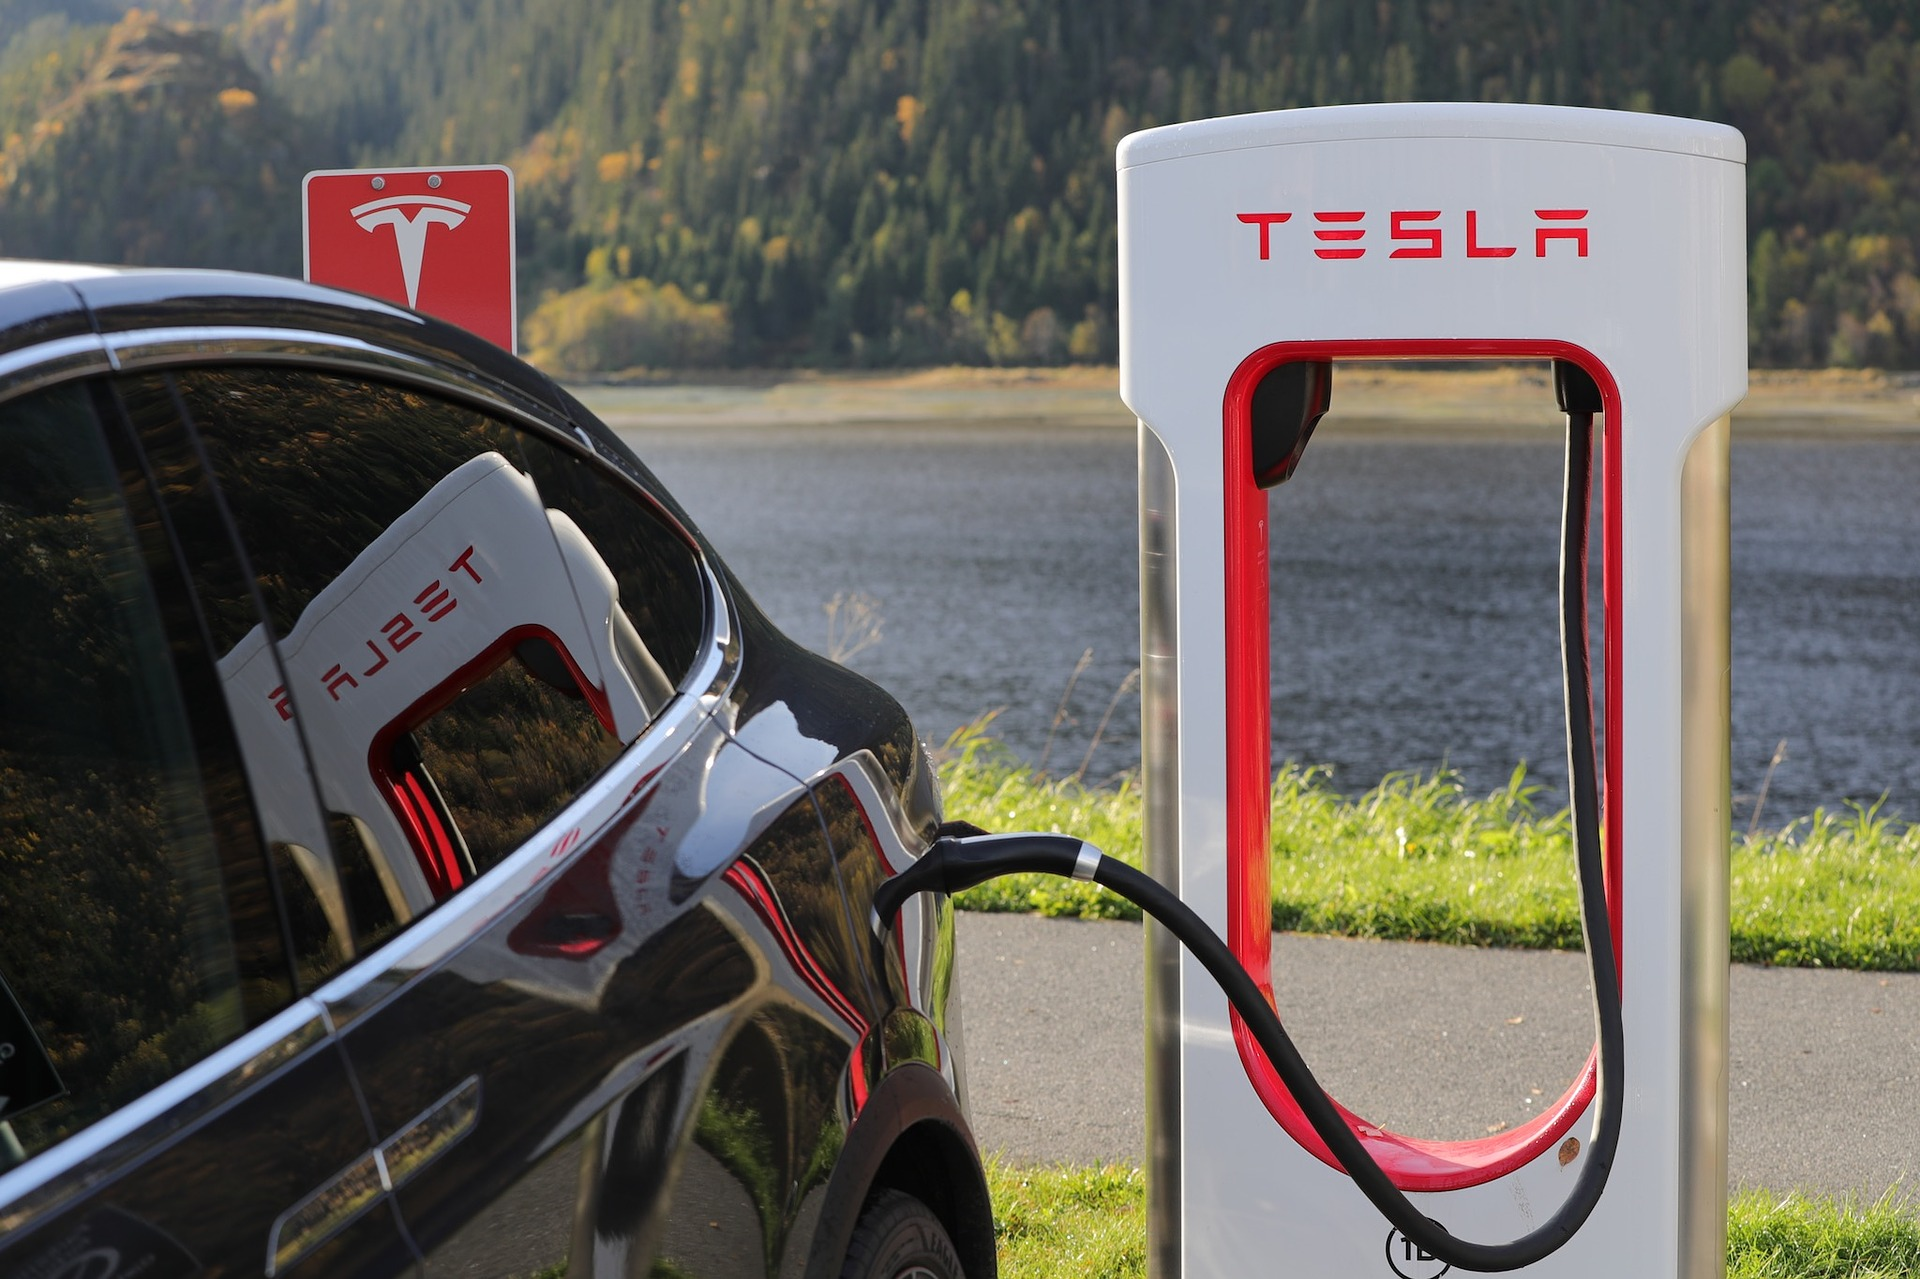 Tesla's new V3 Superchargers power a Model 3 at rates up to 1,000